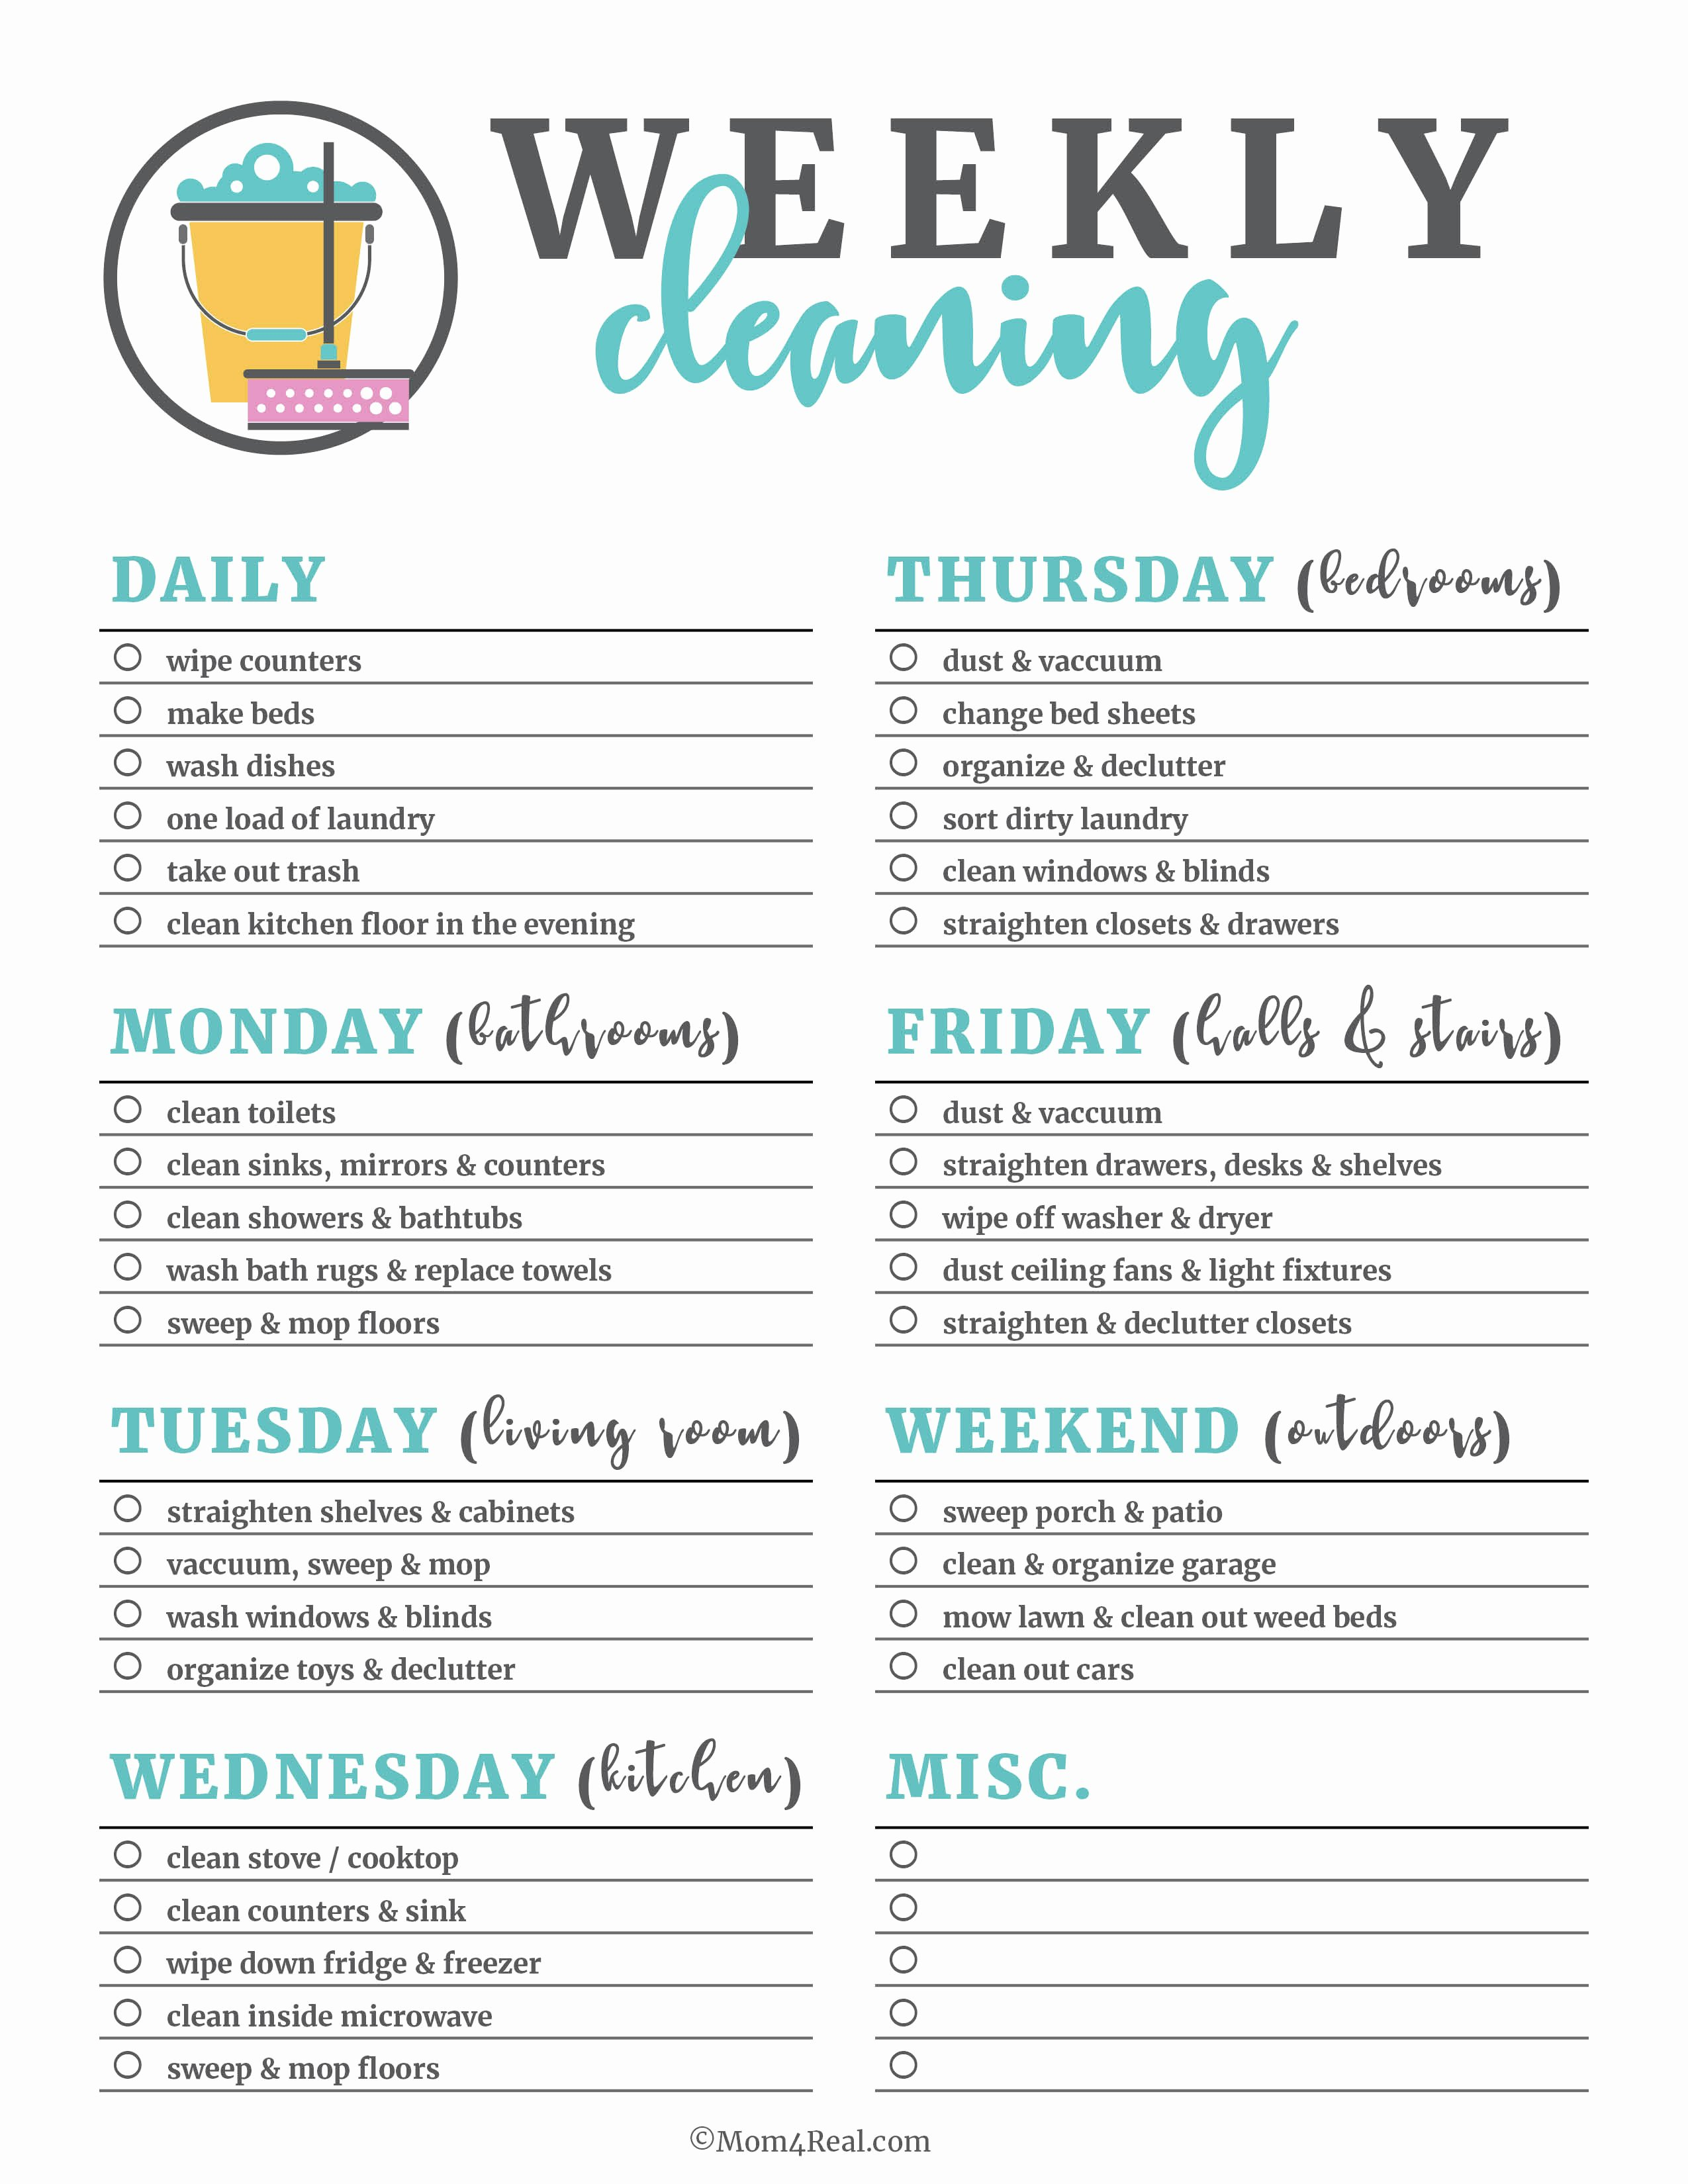 House Cleaning Checklist Template Inspirational Printable Cleaning Checklists for Daily Weekly and